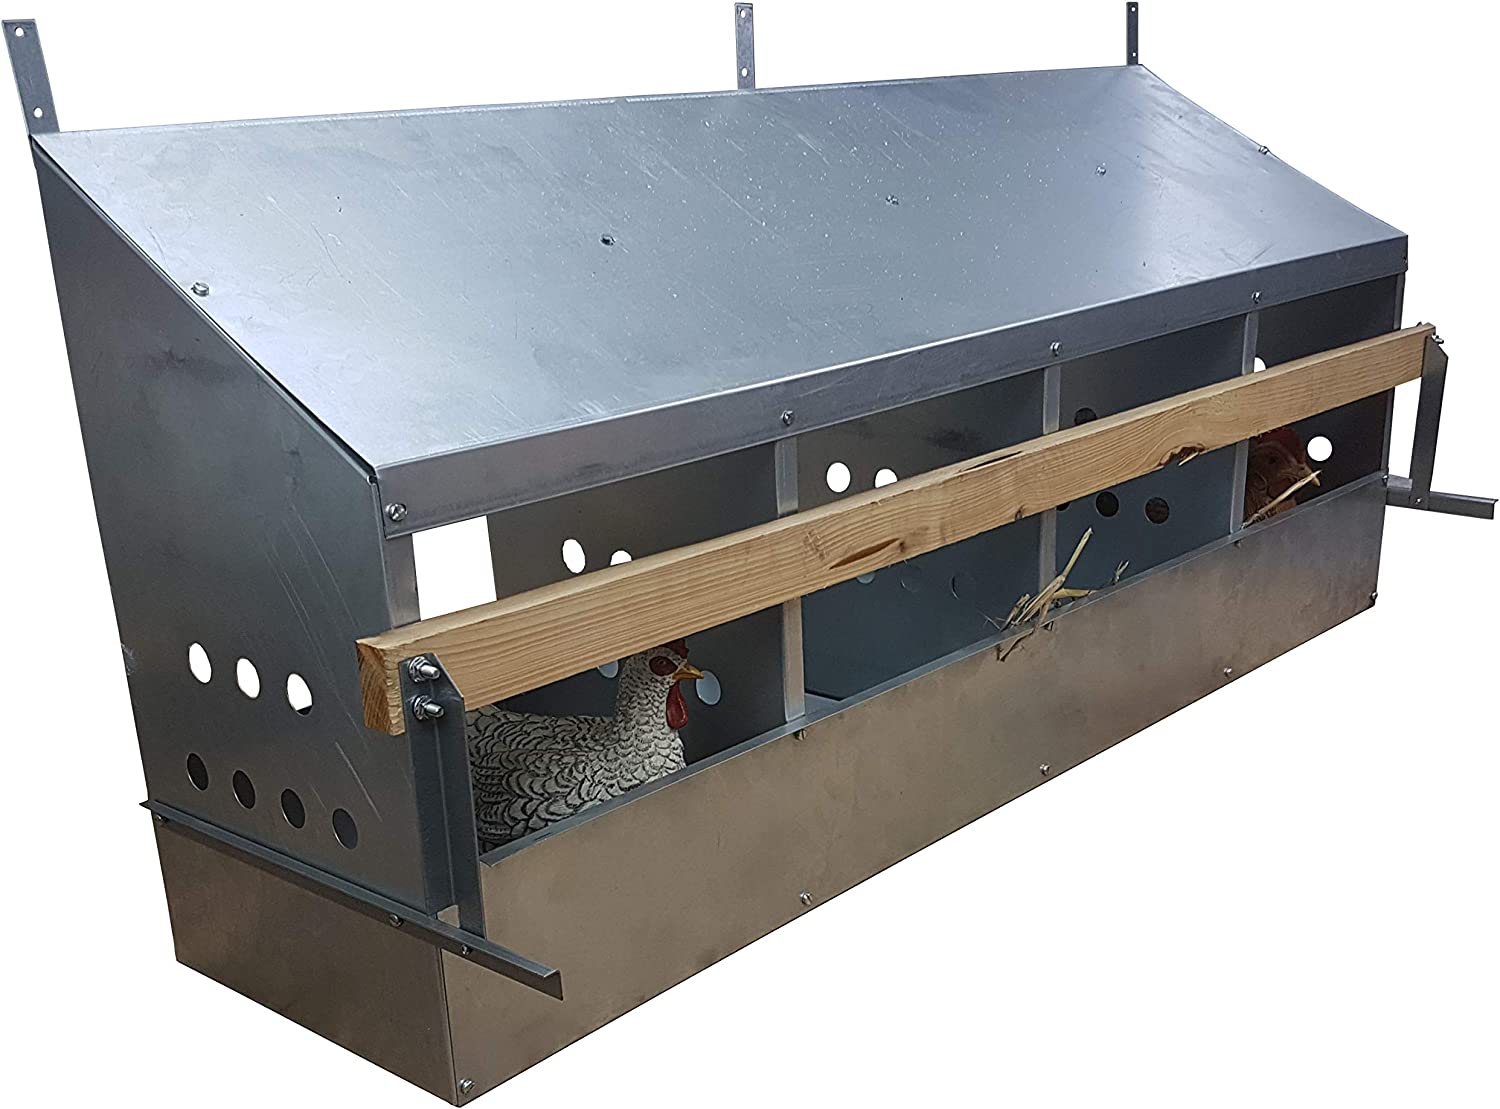 2 Hole Galvanized Metal Chicken Poultry Nesting Box